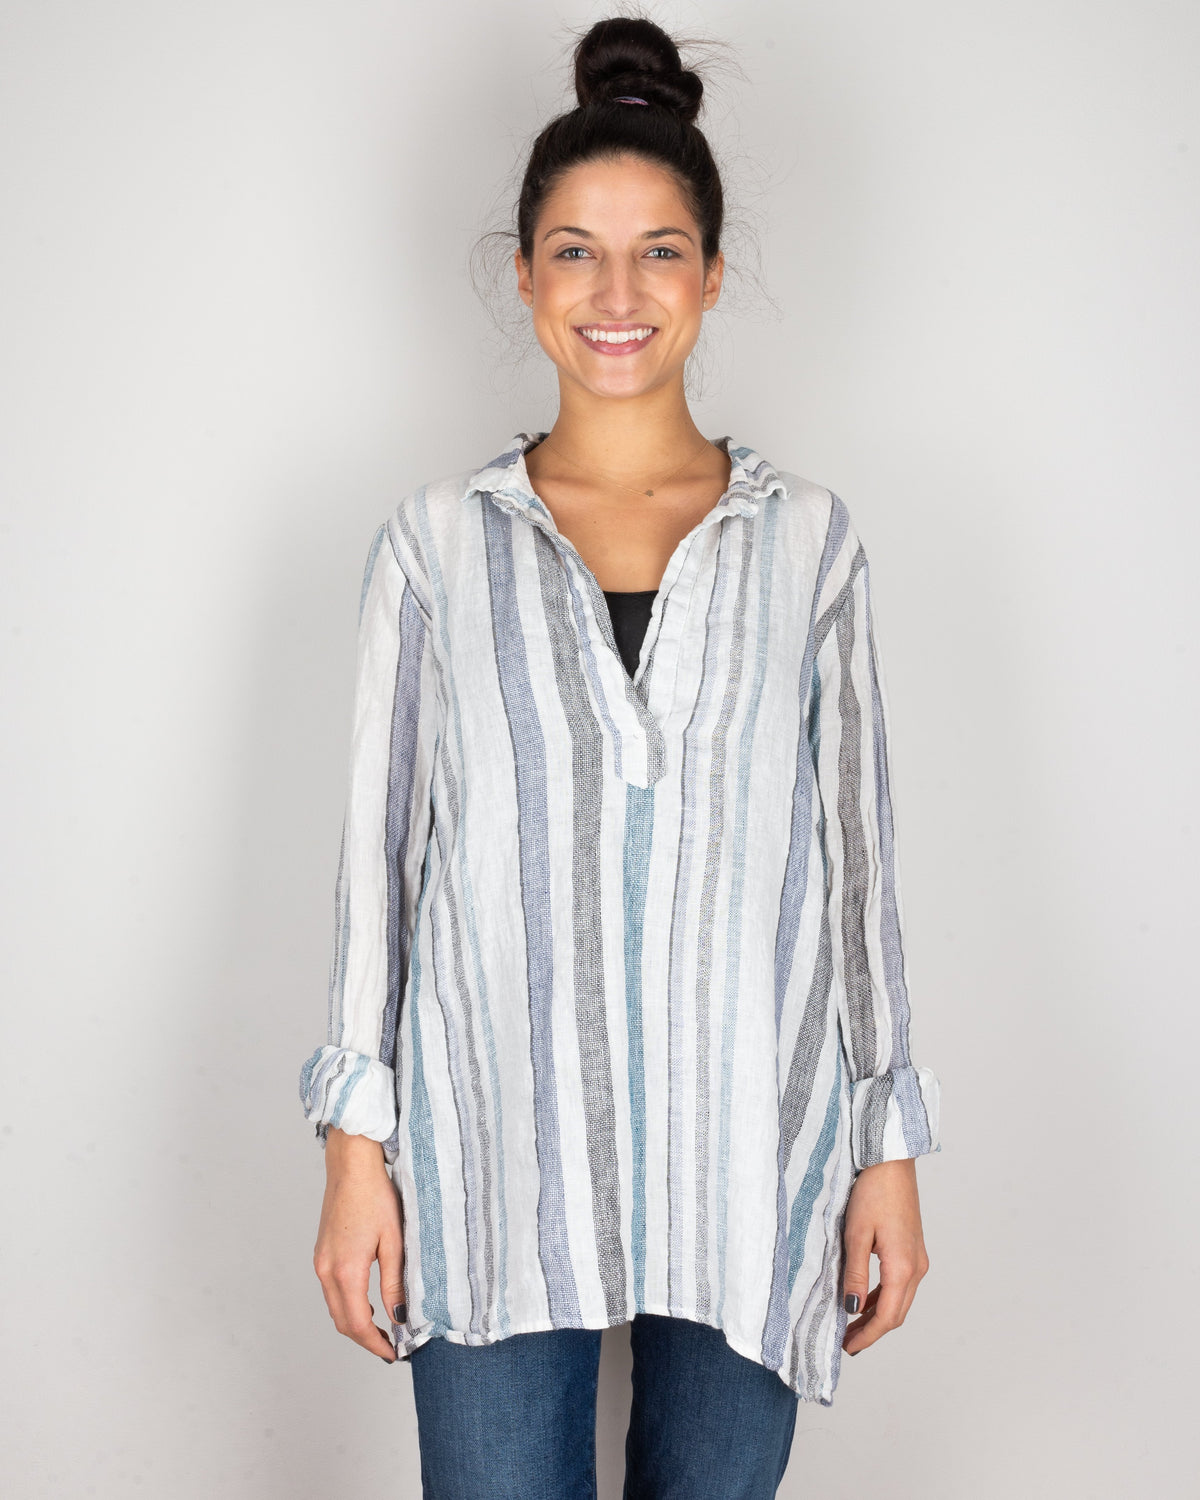 CP Shades Clothing Blue & Black Stripe / XS Kendall Blouse in Blue & Black Stripe